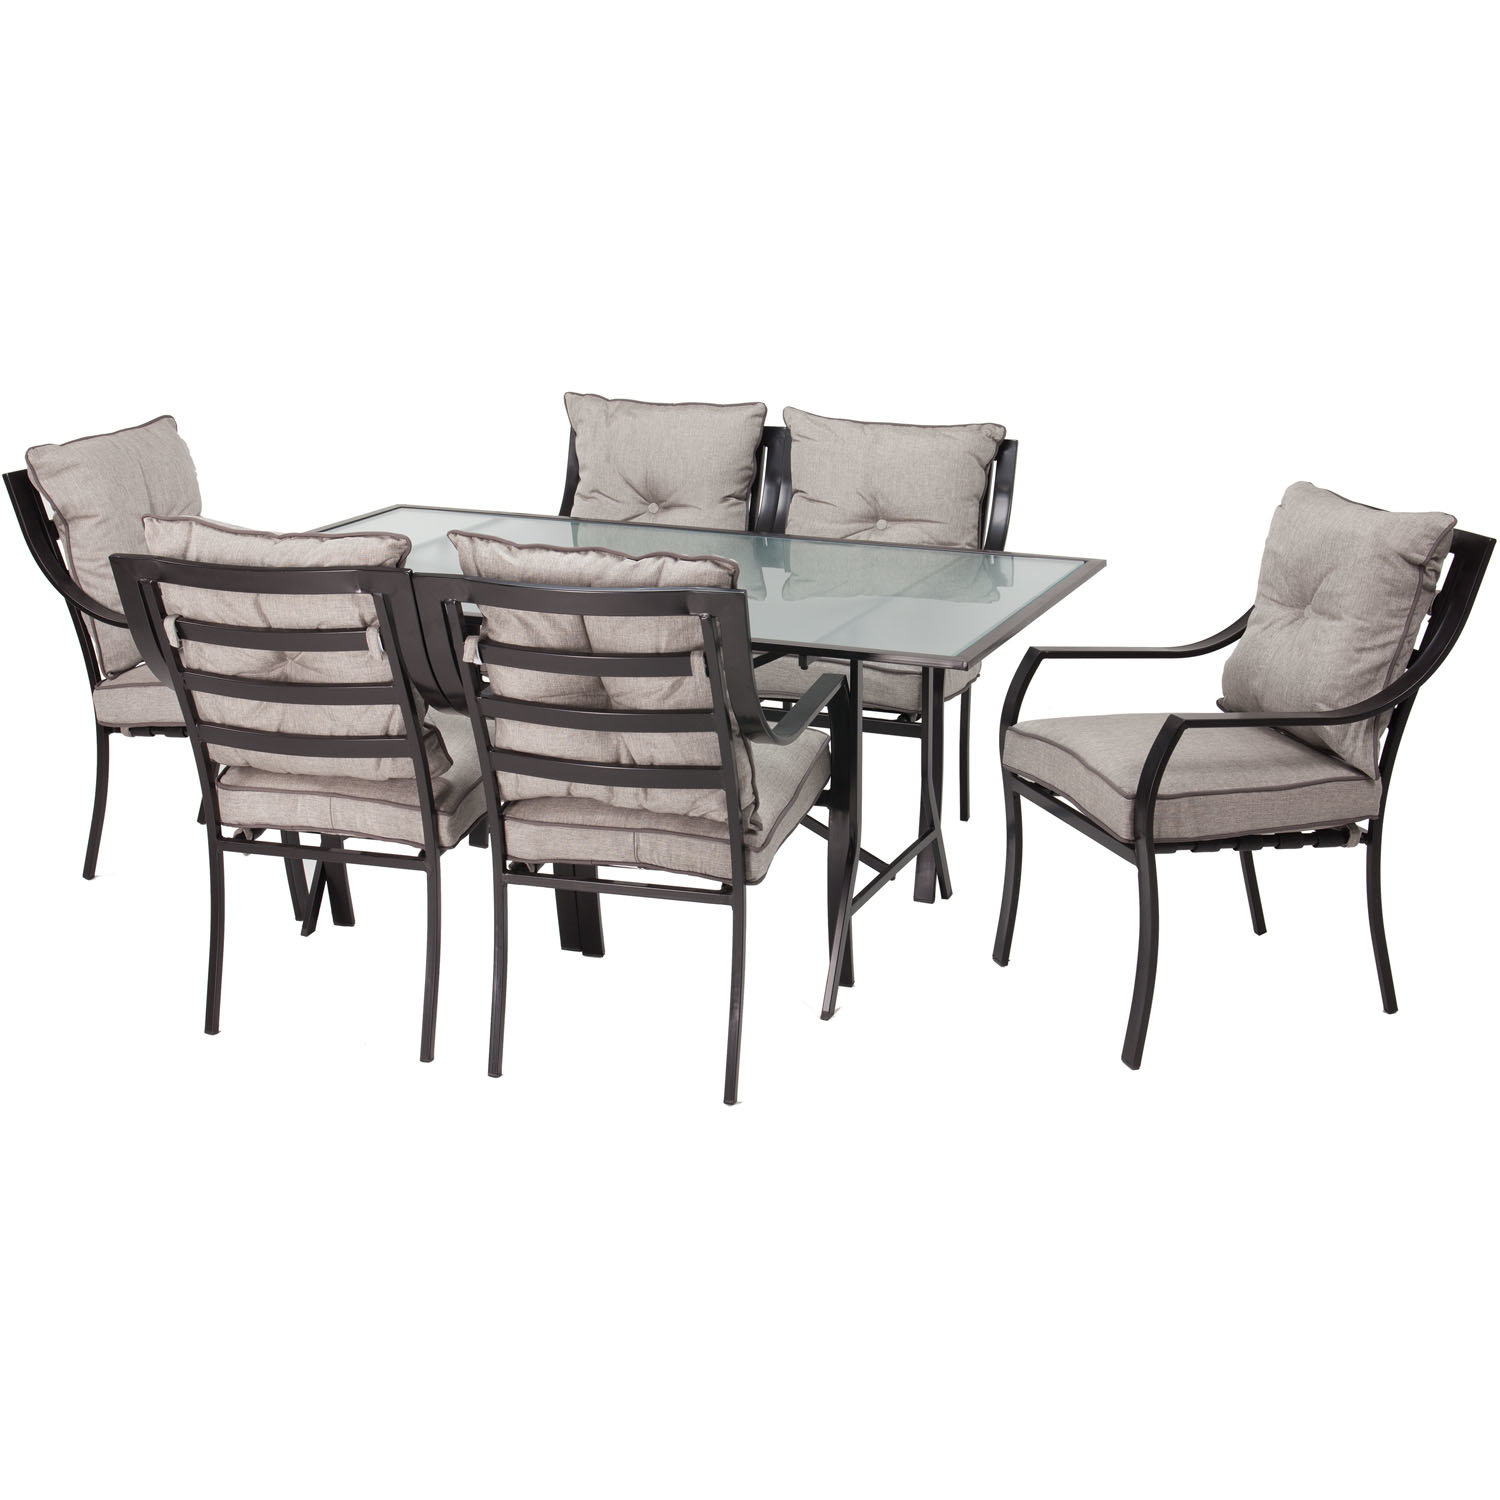 Joss & Main Pertaining To Miskell 5 Piece Dining Sets (#6 of 20)